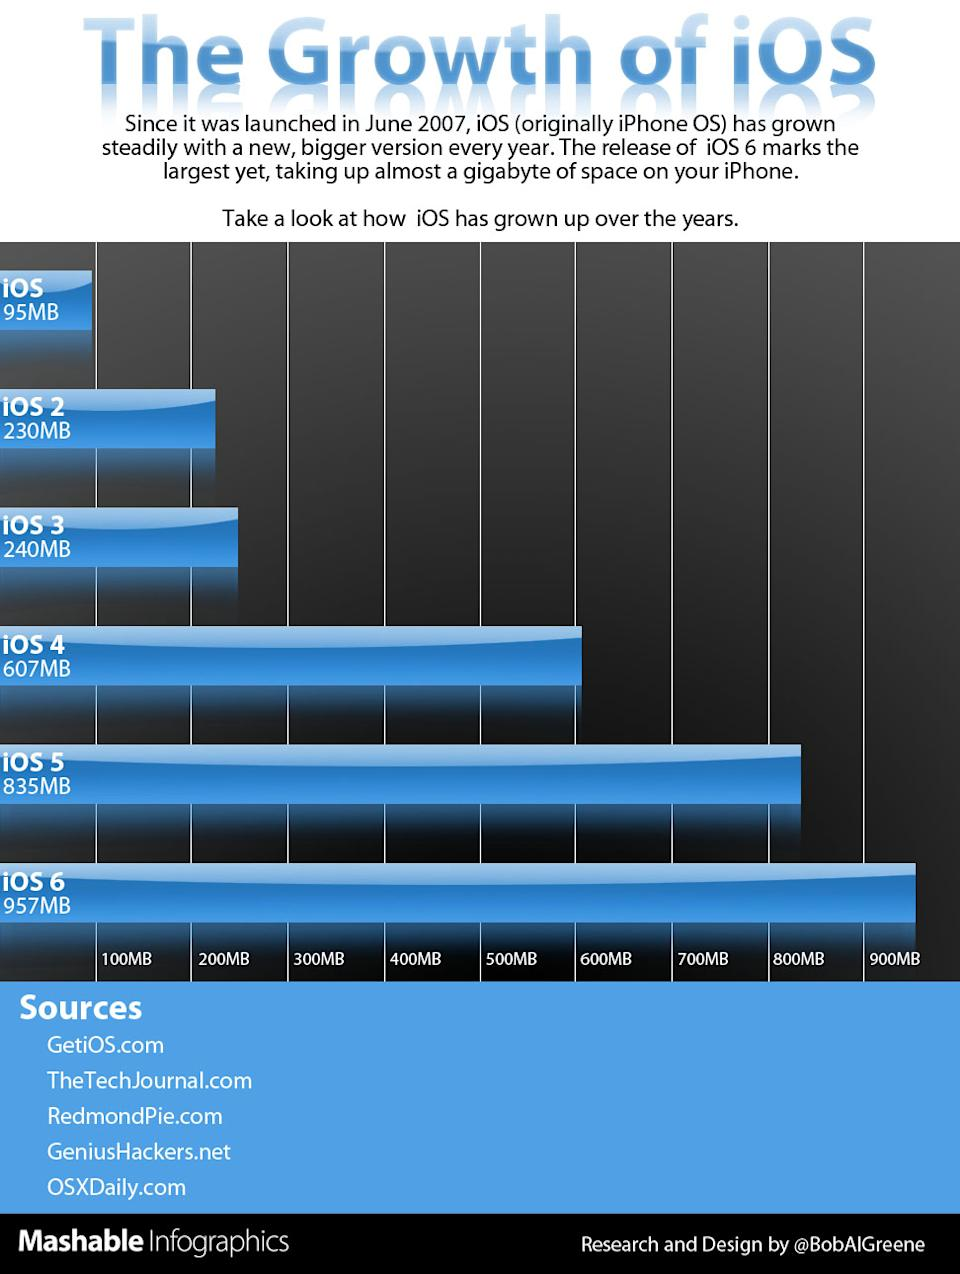 iOS 6 Is 10 Times Bigger Than the First iOS [INFOGRAPHIC]